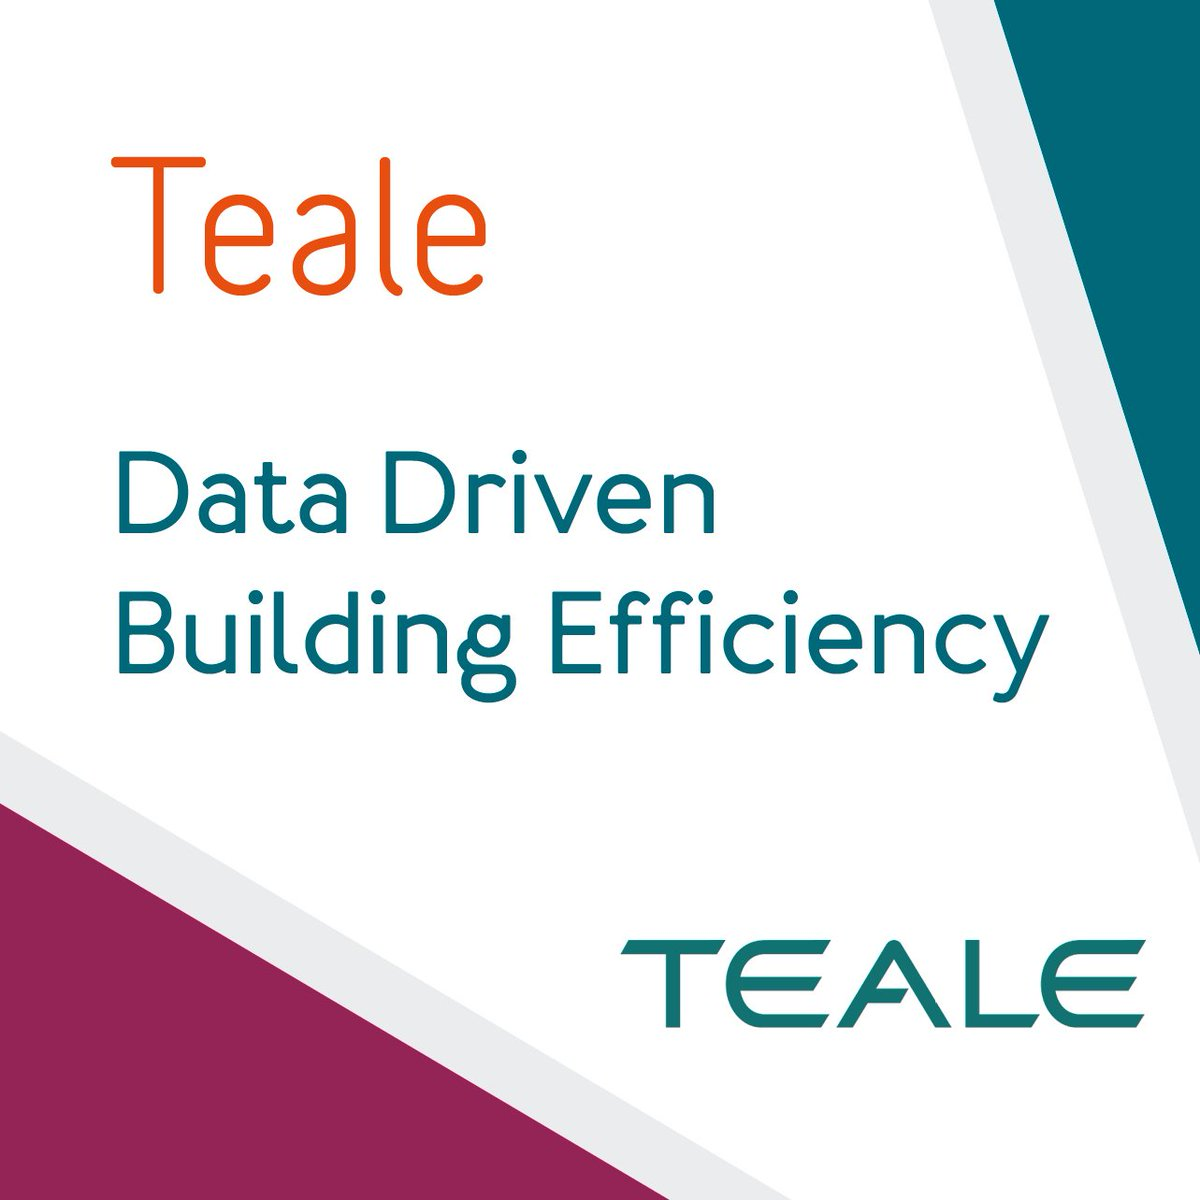 New Startup#Teale! Energy management company,  #range of services from data acquisition &amp; analytics, energy bills... https://www. teale.asia  &nbsp;  <br>http://pic.twitter.com/InUcuncbcG